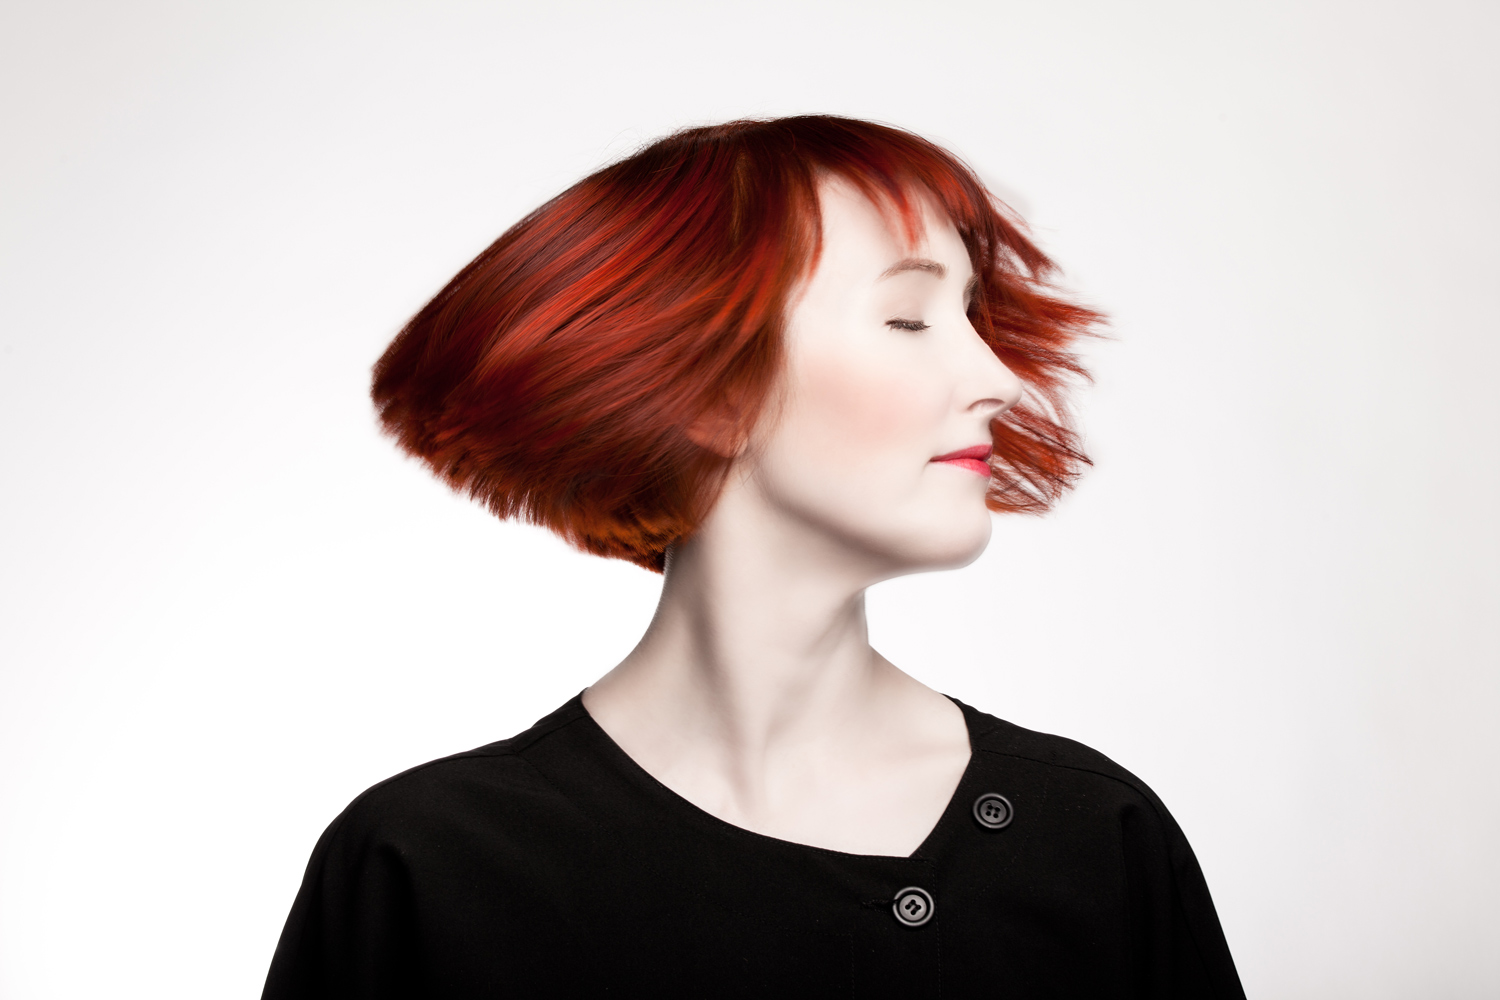 All images subject to copyright. Hair cut & styled by Adrian Elwell.